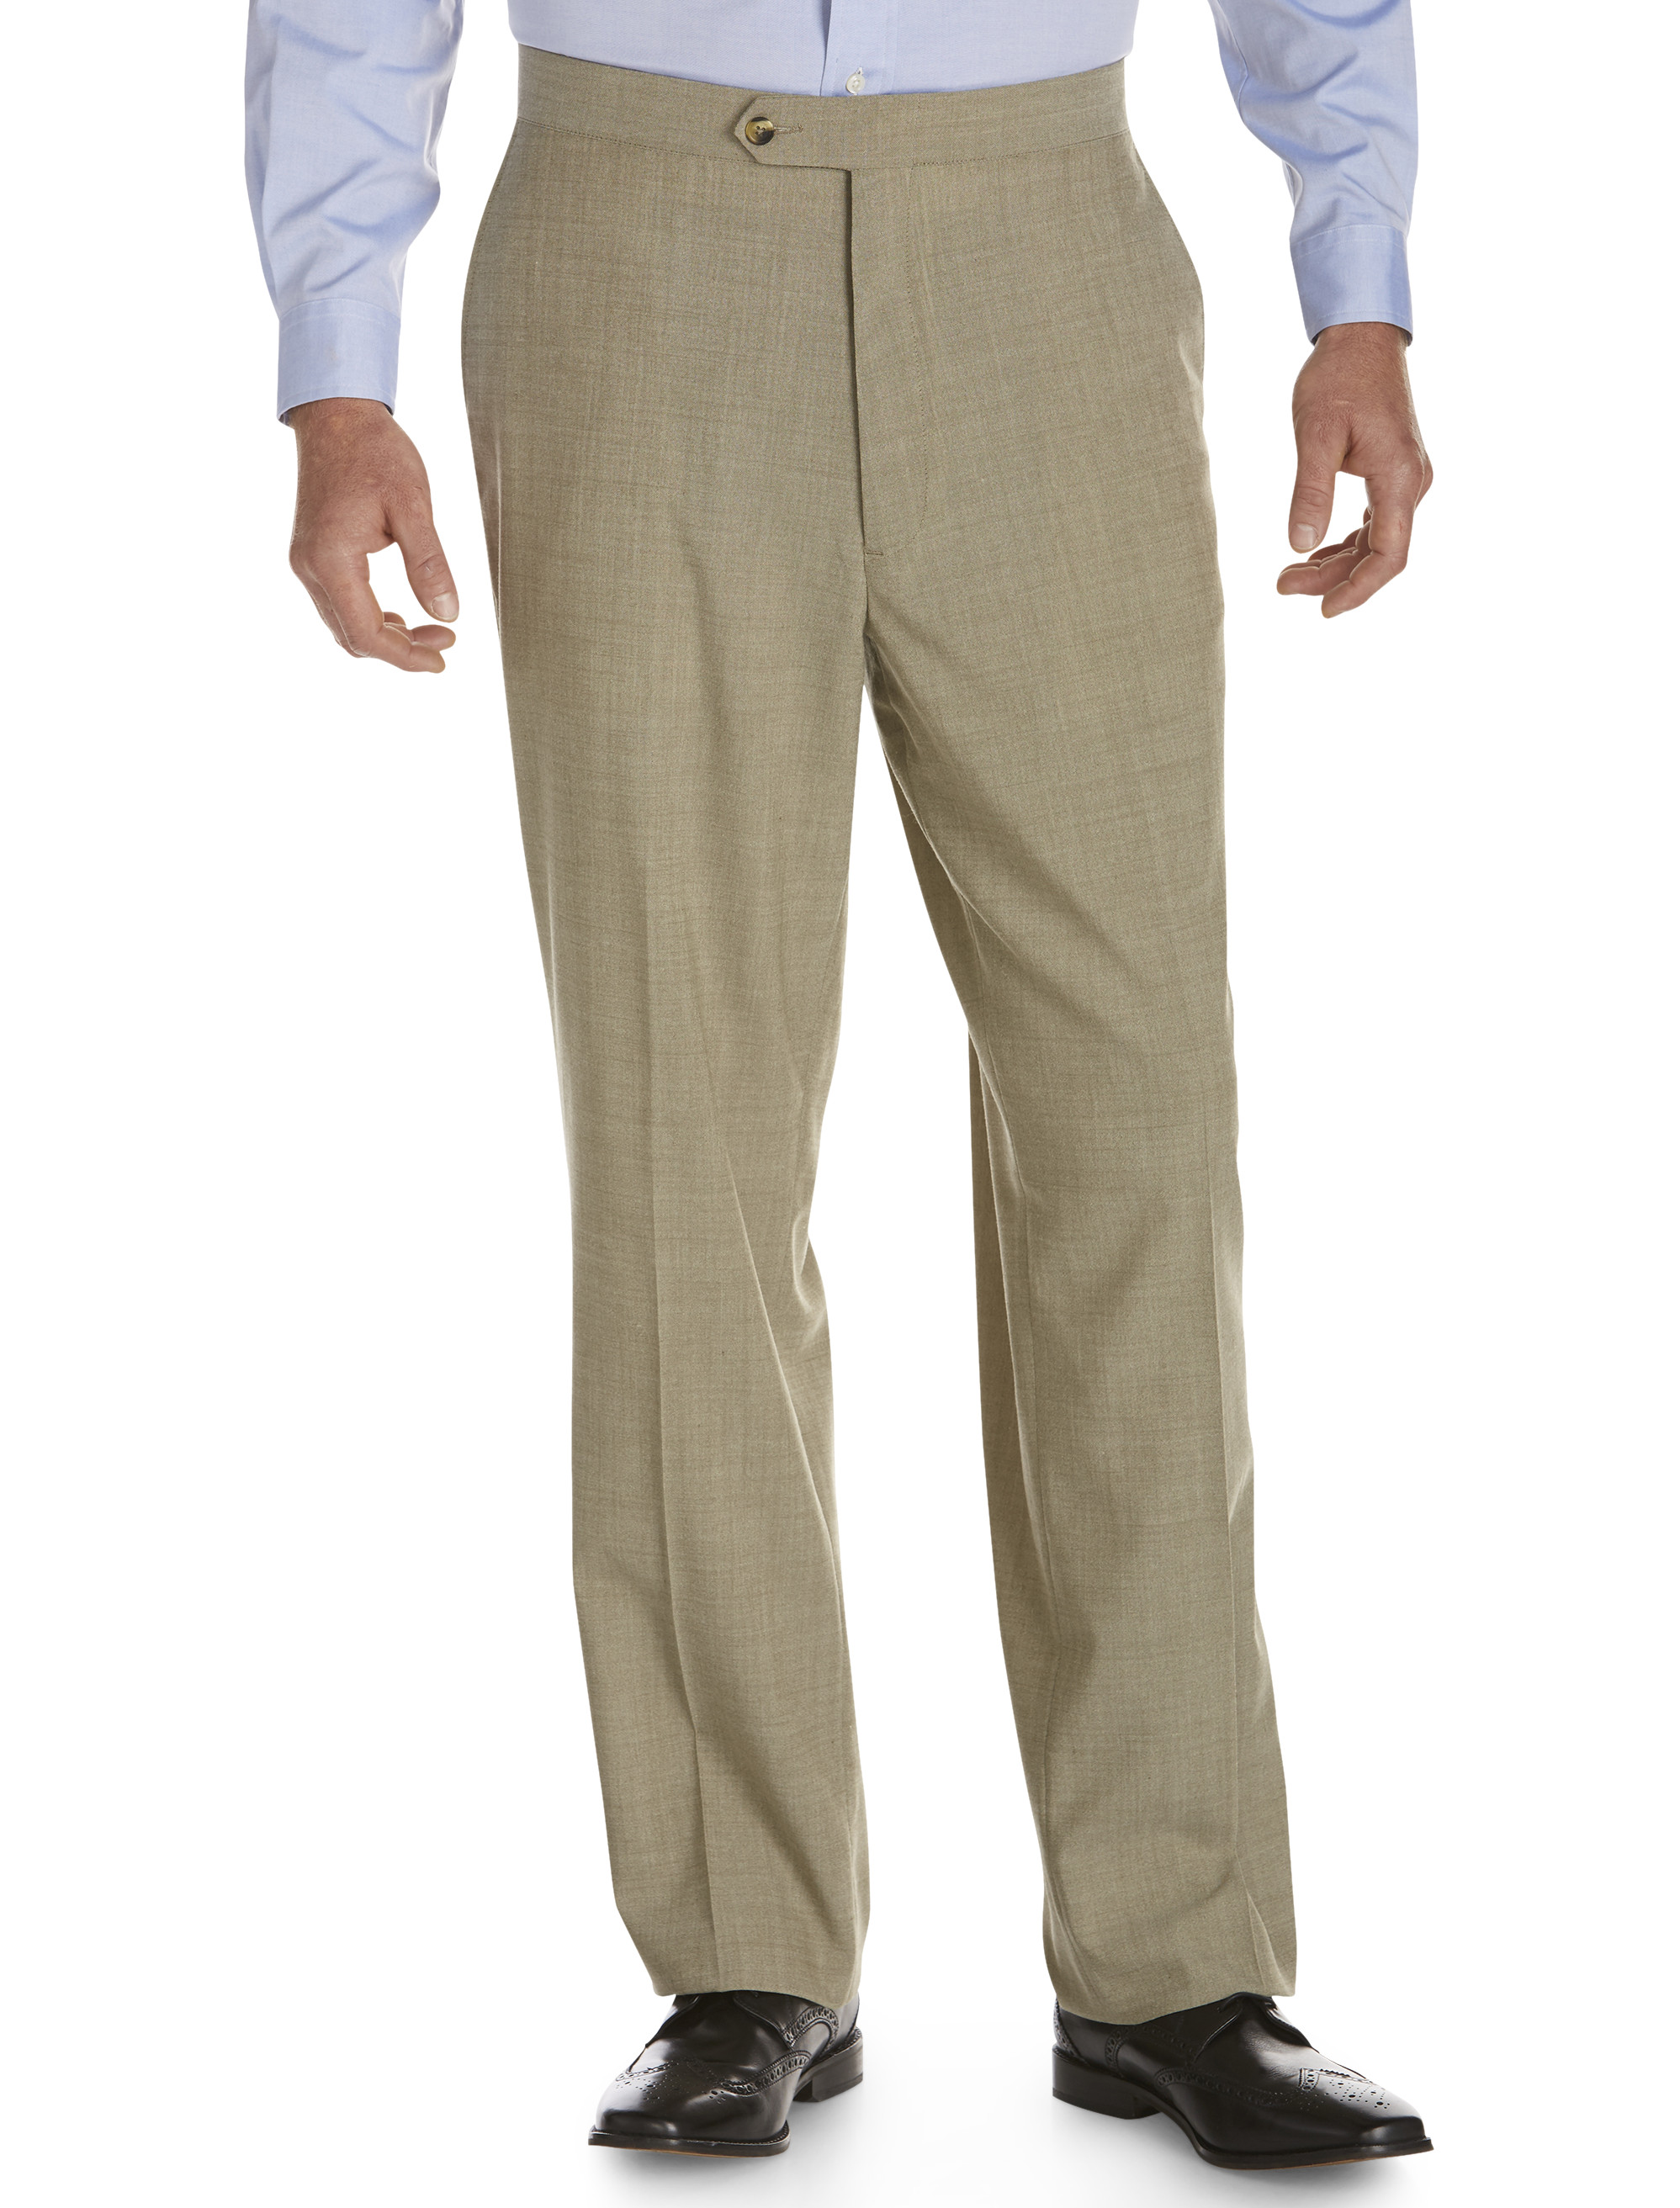 Big and Tall Men's Casual Pants. Chinos, Khakis, Jeans, Cargo pants for work or everyday wear. Available in Waist Sizes 44, 46, 48, 50, 52, 54, 56, 58, 60, .